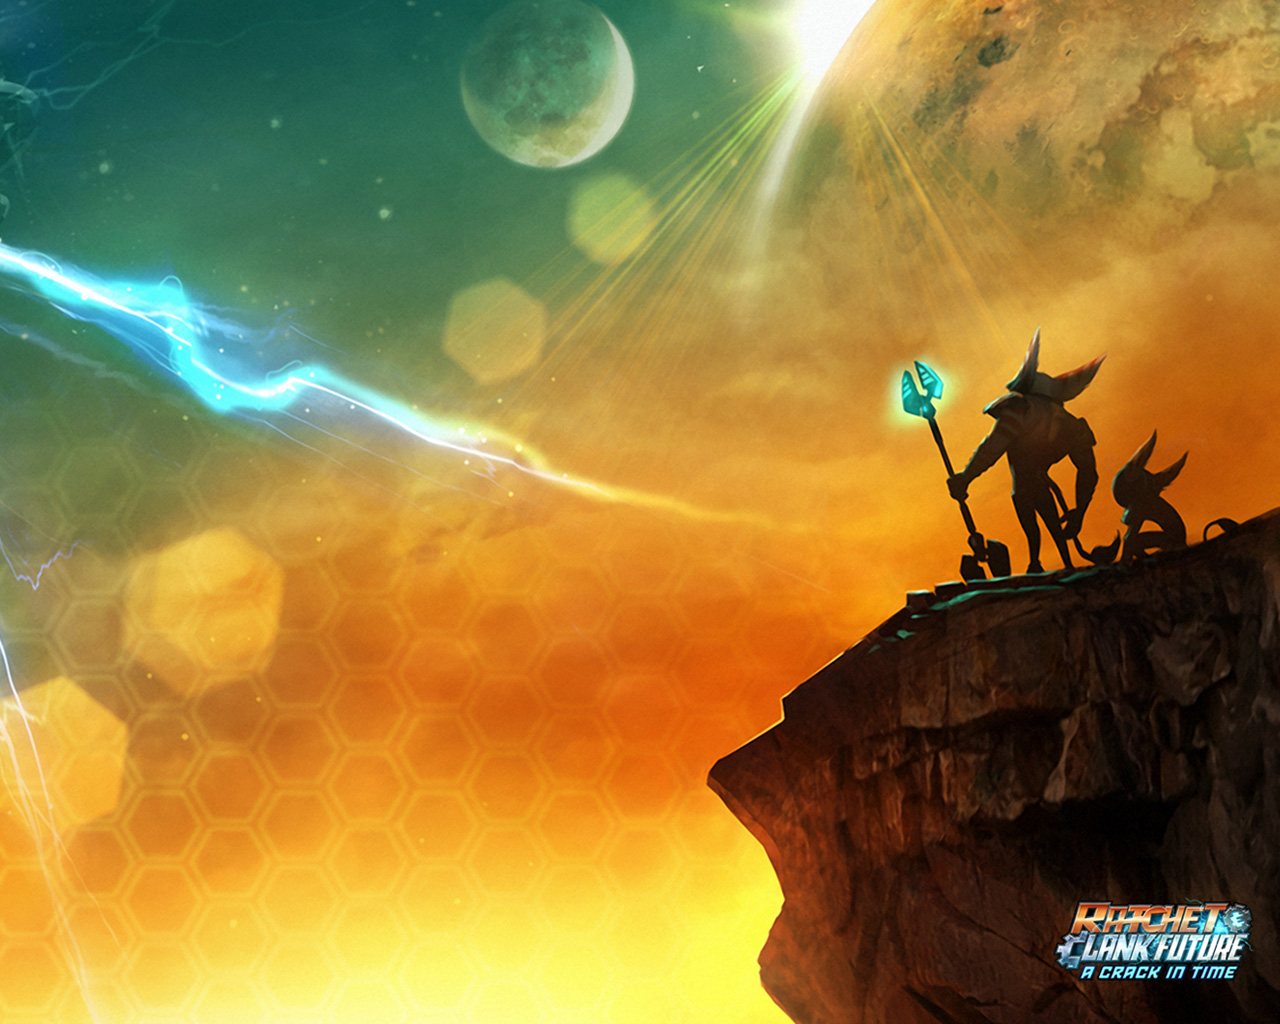 Free Ratchet & Clank Future: A Crack in Time Wallpaper in 1280x1024